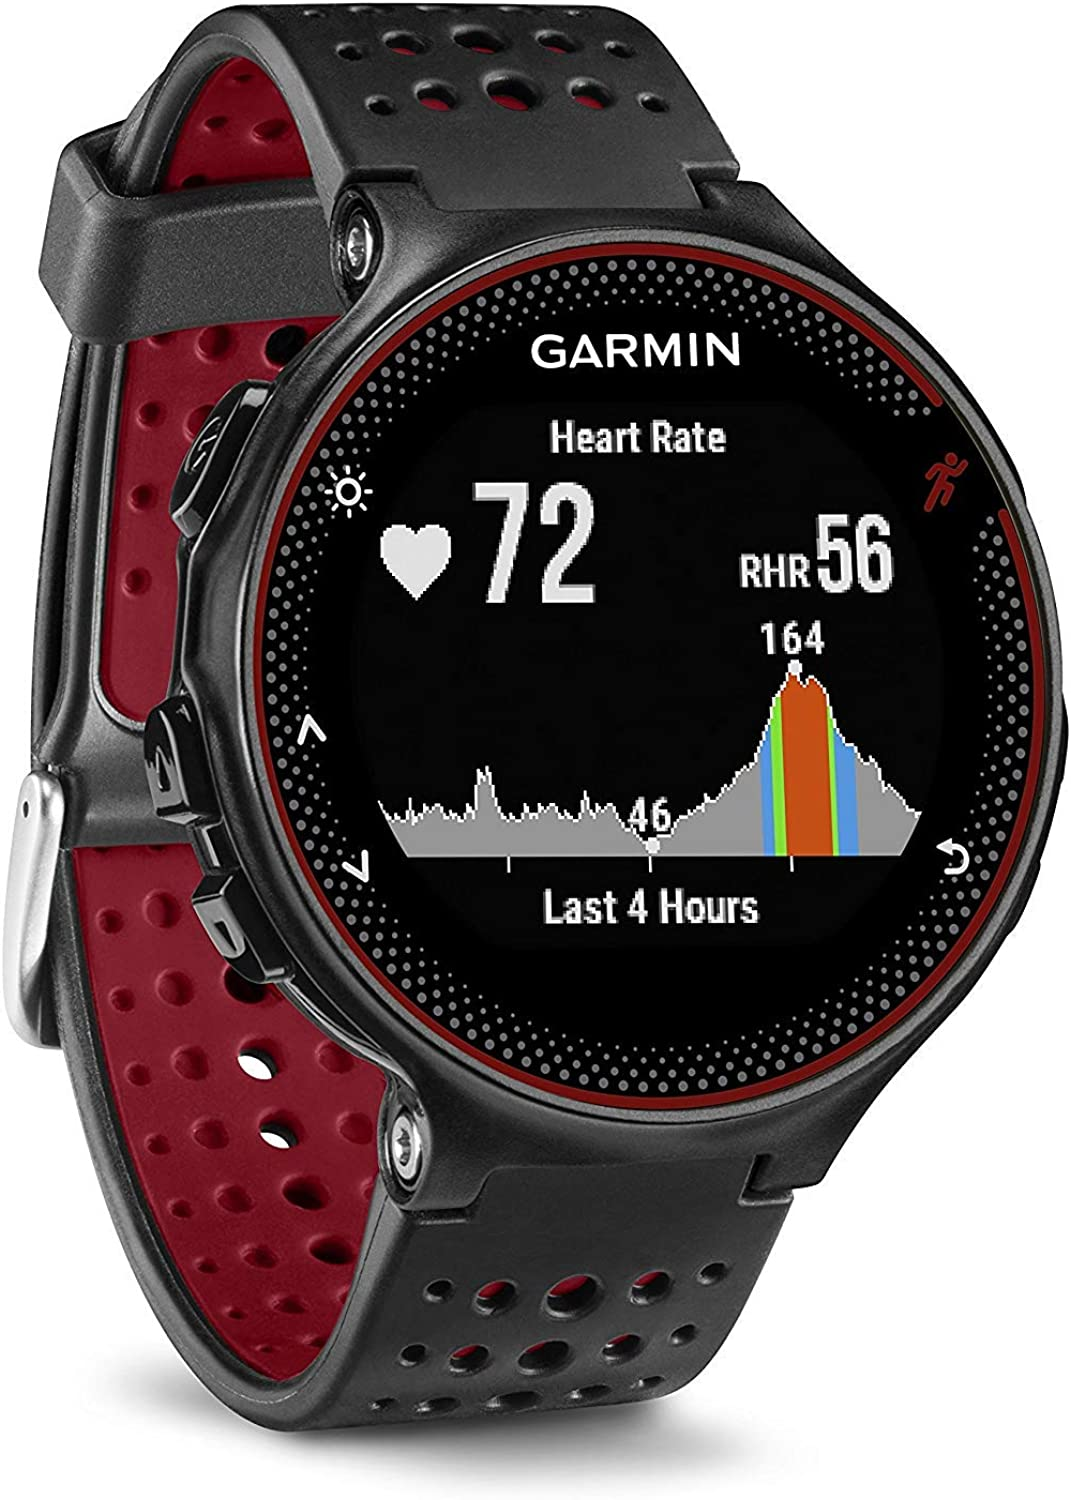 Garmin Forerunner 235 Laufuhr, Herzfrequenzmessung am Handgelenk, Smart Notifications